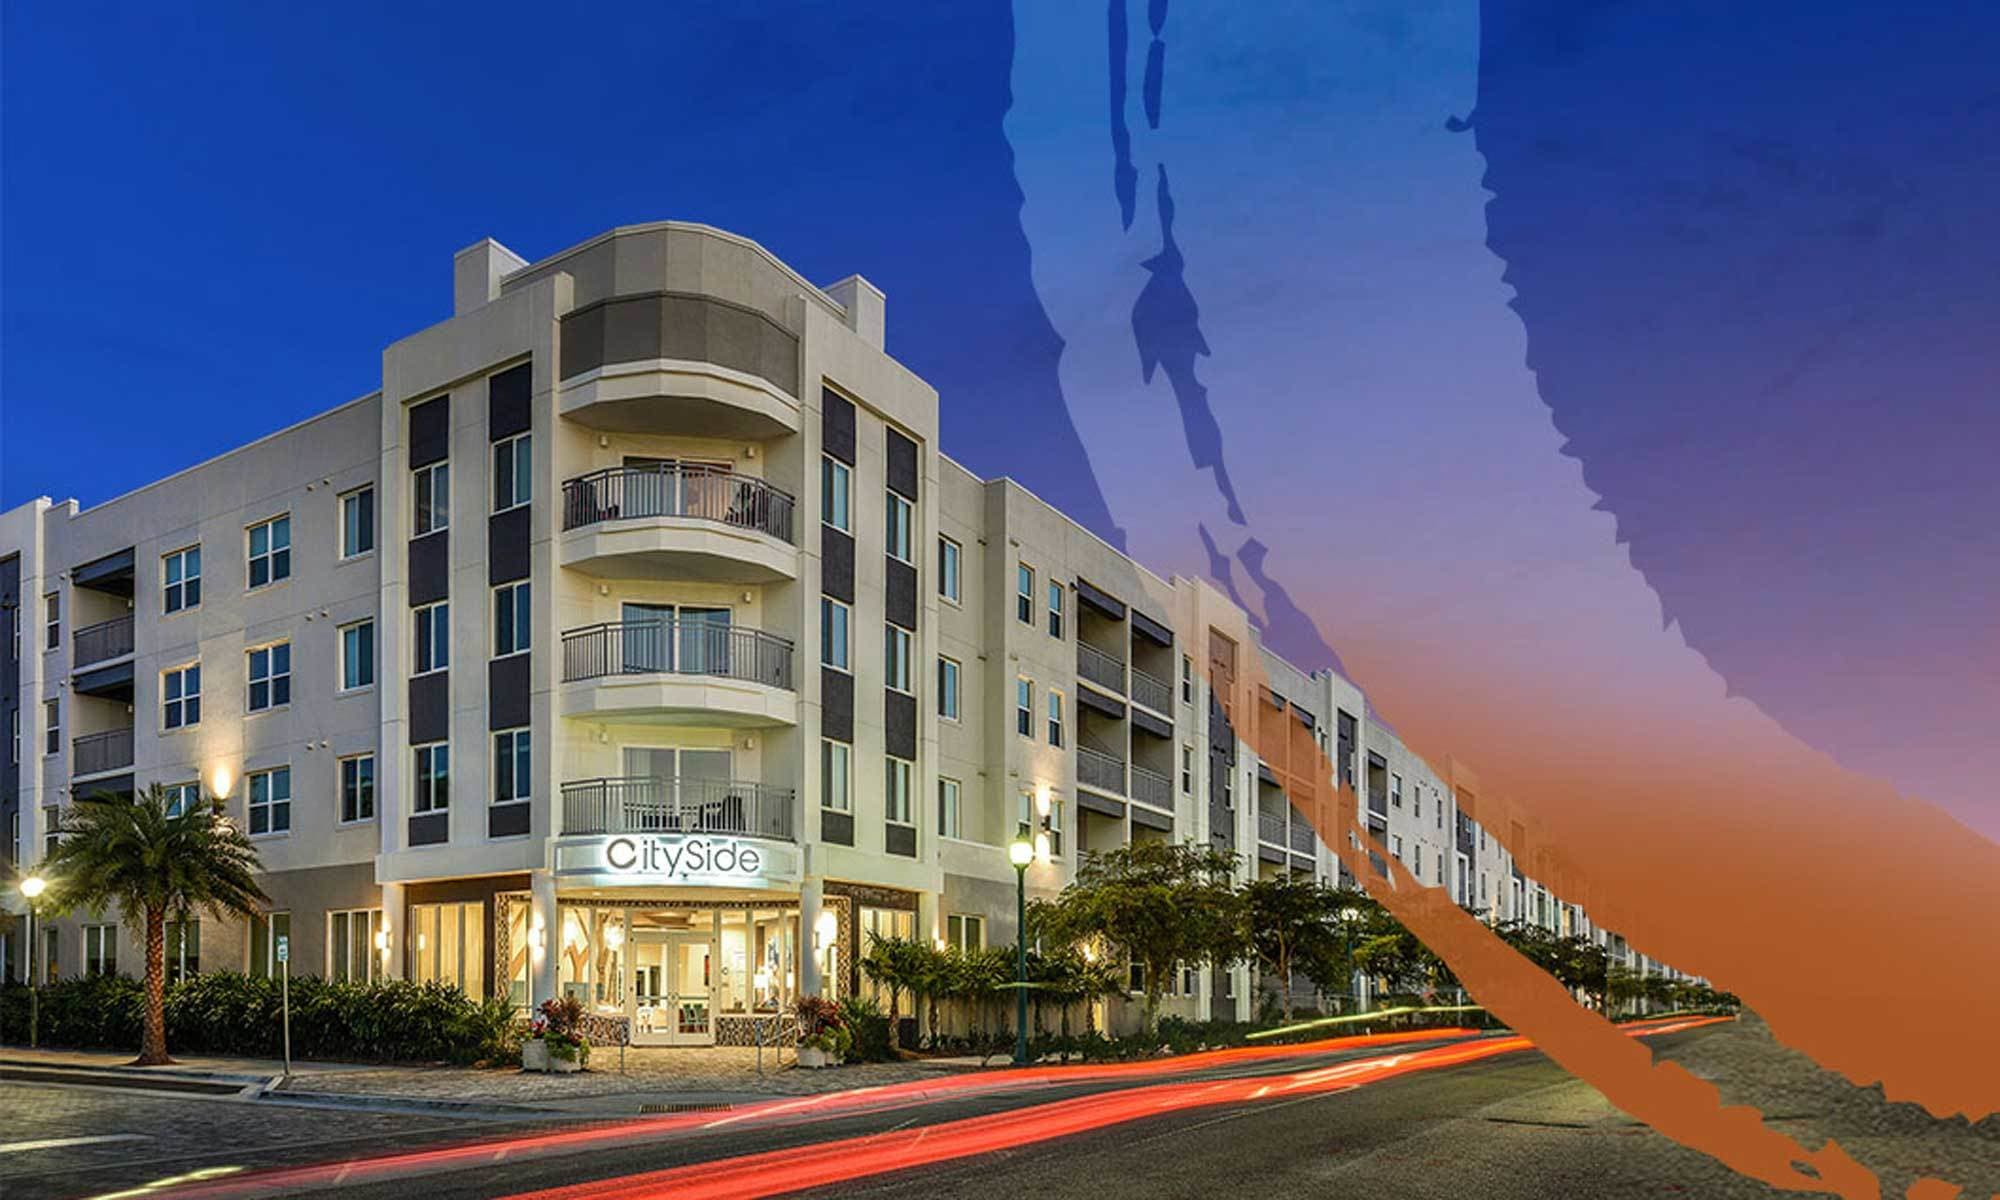 rosemary district sarasota fl apartments for rent near downtown